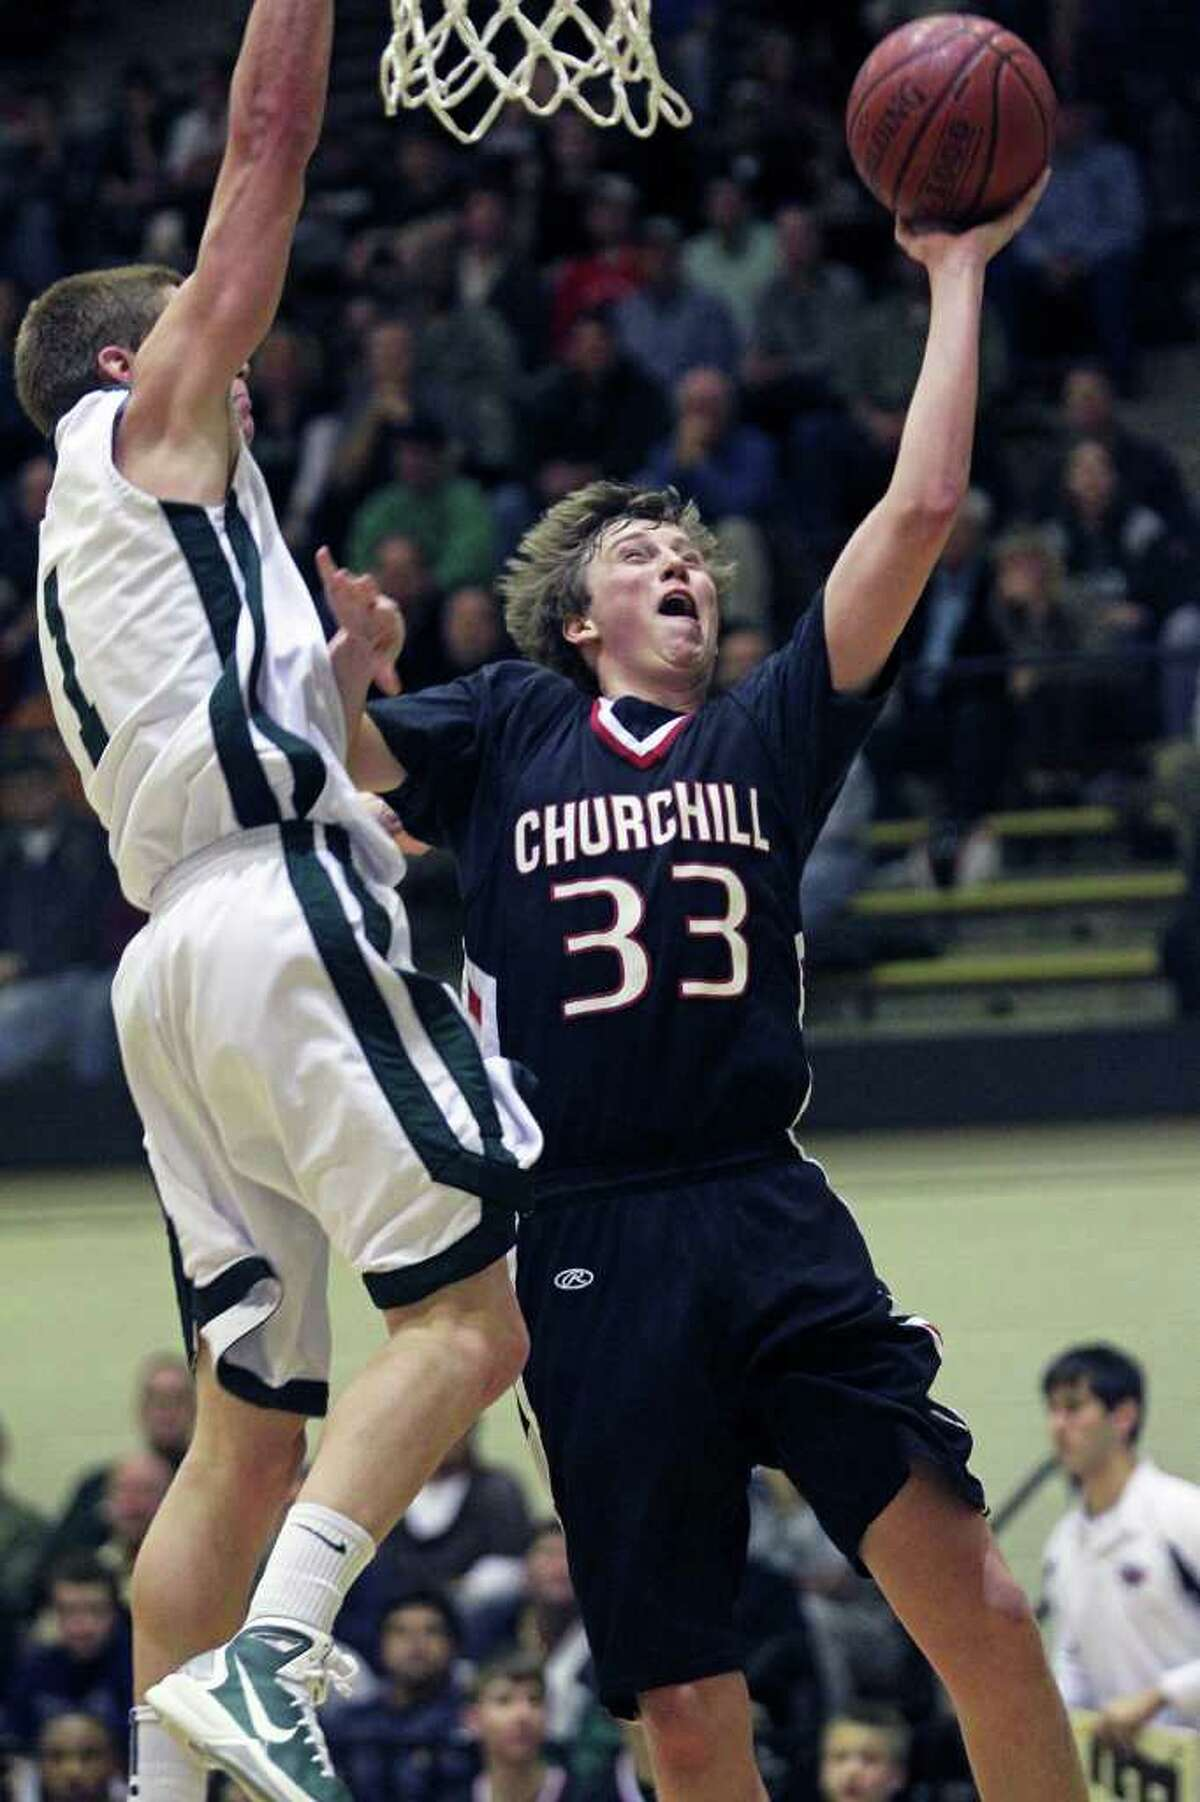 Churchill's Jacob Woods gets a shot off around Max Yon as the Reagan boys play Churchill at Littleton Gymnasium on Tuesday, Jan. 25, 2011. Churchill won 96-84.